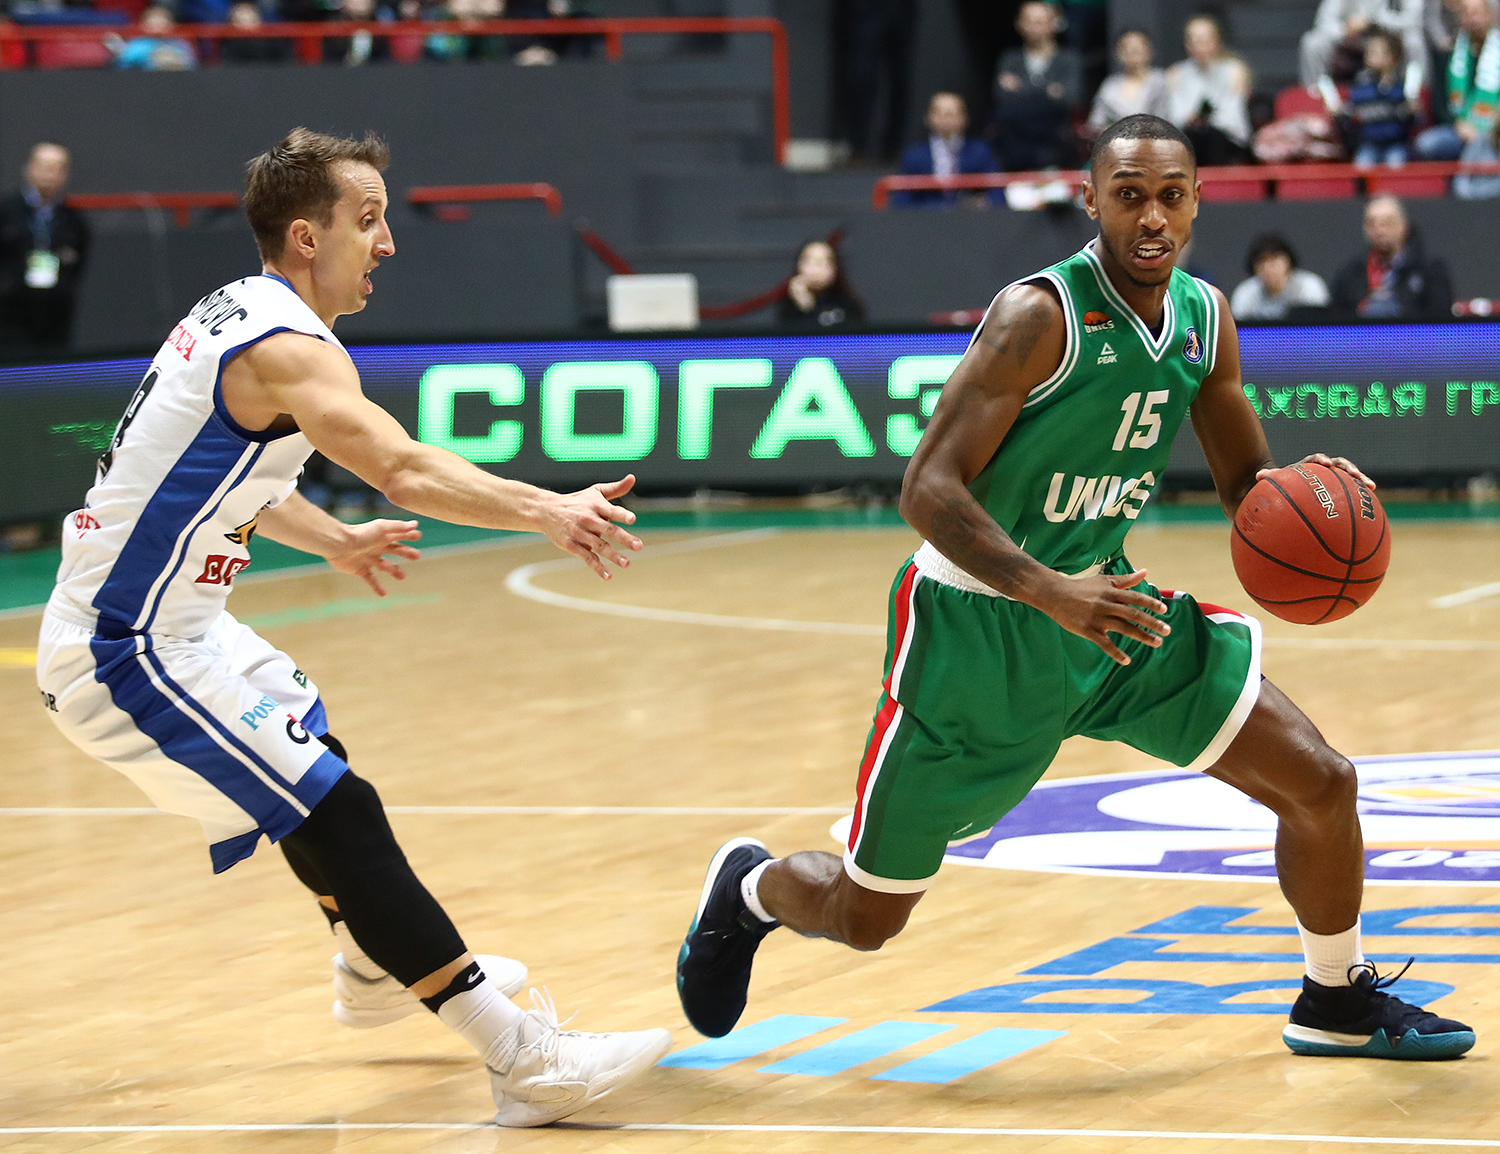 UNICS Escapes Again, Beats Kalev By Two